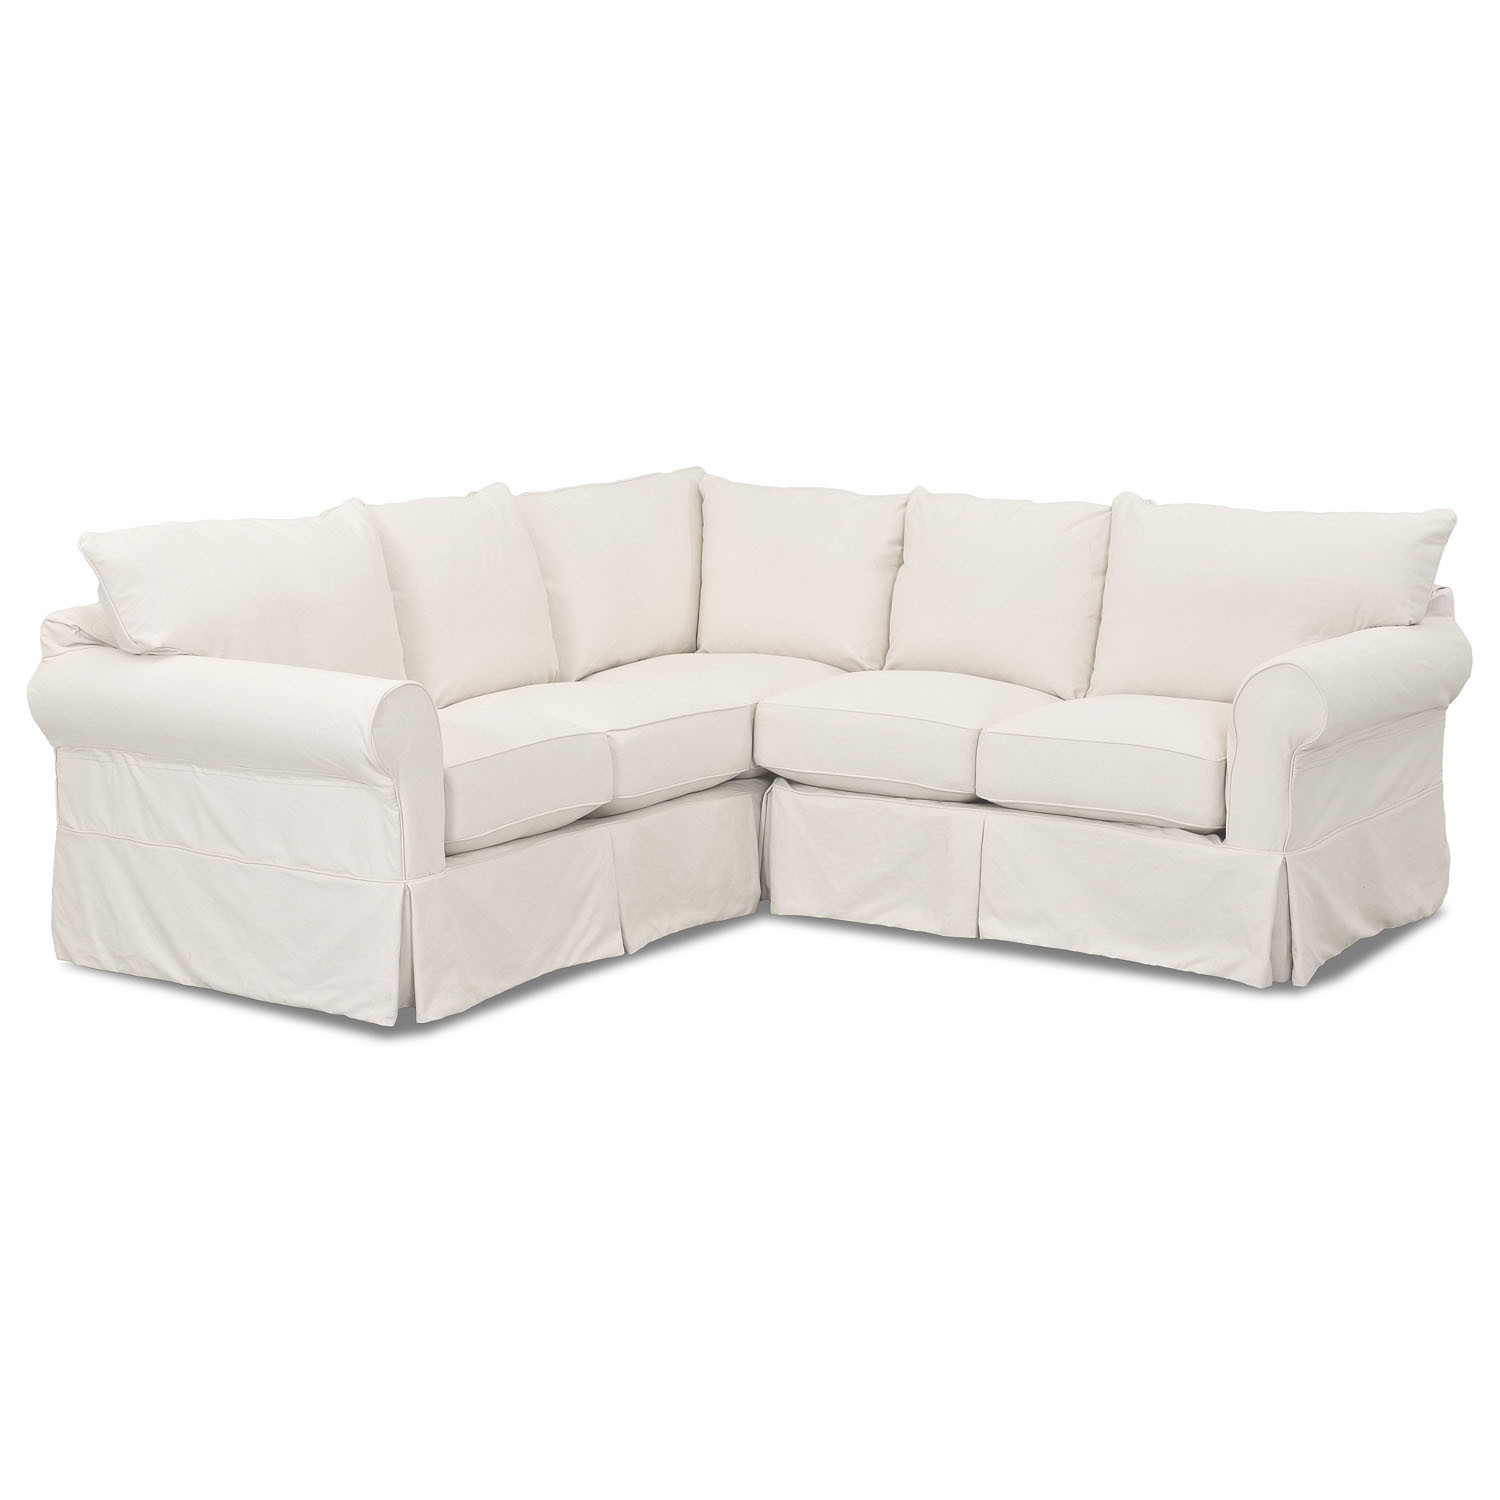 Best ideas about Wayfair Sectional Sofa . Save or Pin Wayfair Custom Upholstery Felicity Sectional & Reviews Now.